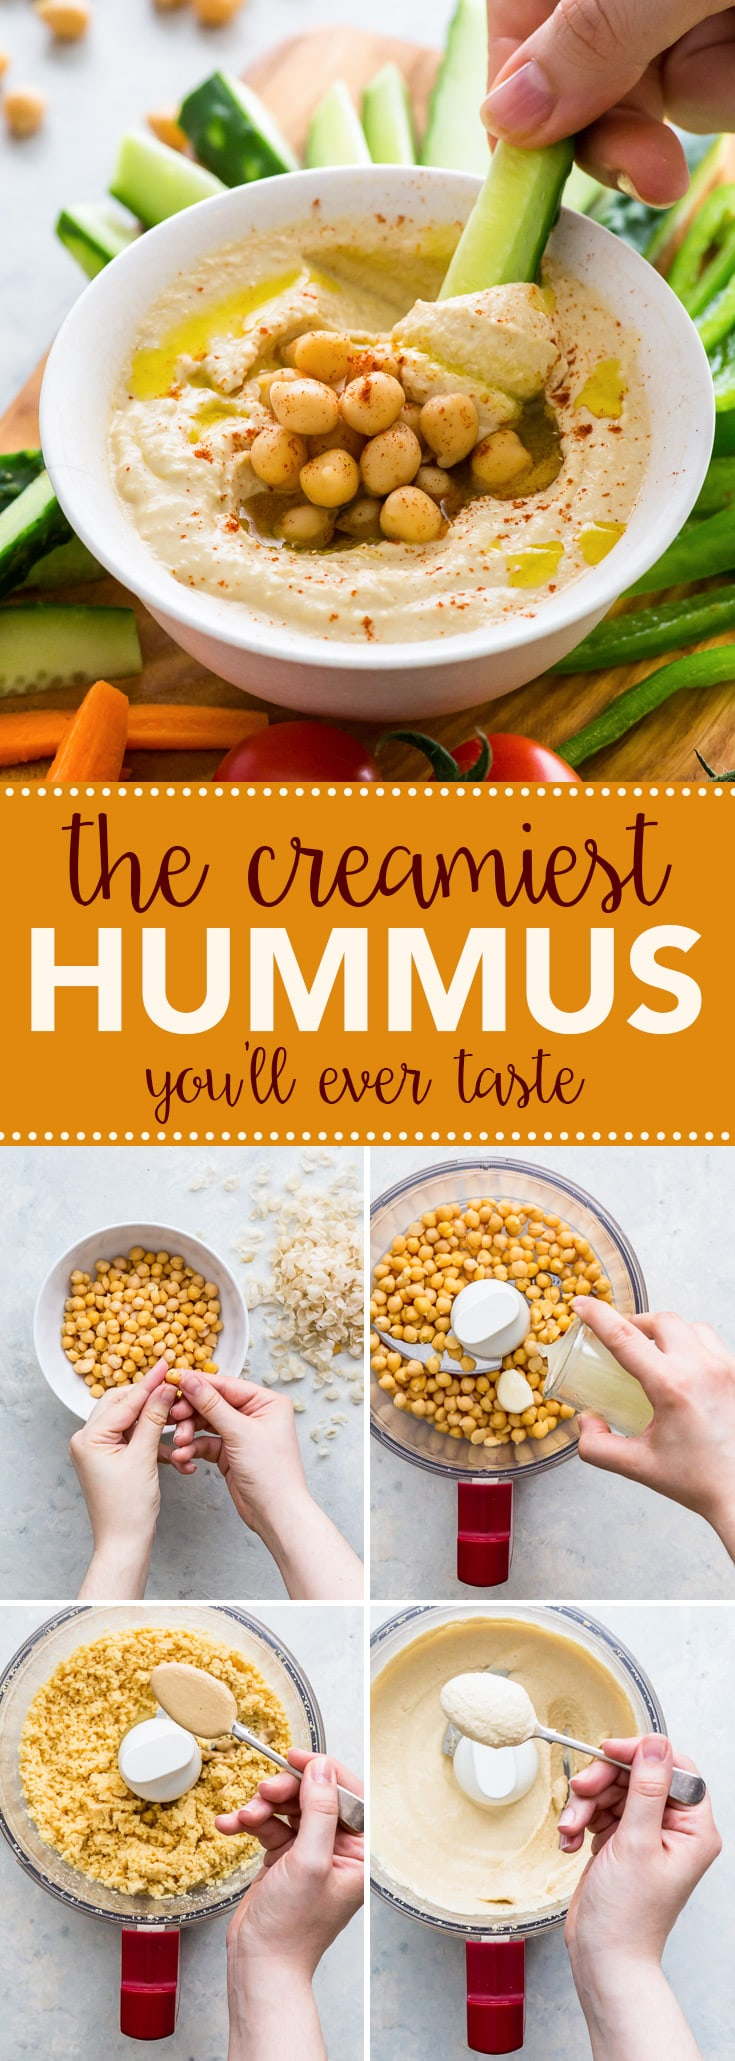 How To Make (The Creamiest) Hummus Ever (Gluten Free, Dairy Free, Vegan) - This is my go-to homemade hummus recipe that makes the creamiest hummus EVER. Once you taste this homemade version, you'll never go back to the store-bought stuff. Healthy recipes. Healthy snack ideas. Healthy snack ideas. Dip recipes. Vegan recipes. Healthy vegan snacks. Healthy lunch ideas. Vegan lunch. Chickpeas recipe. Tahini recipe. #hummus #homemade #vegan #healthyfood #recipes